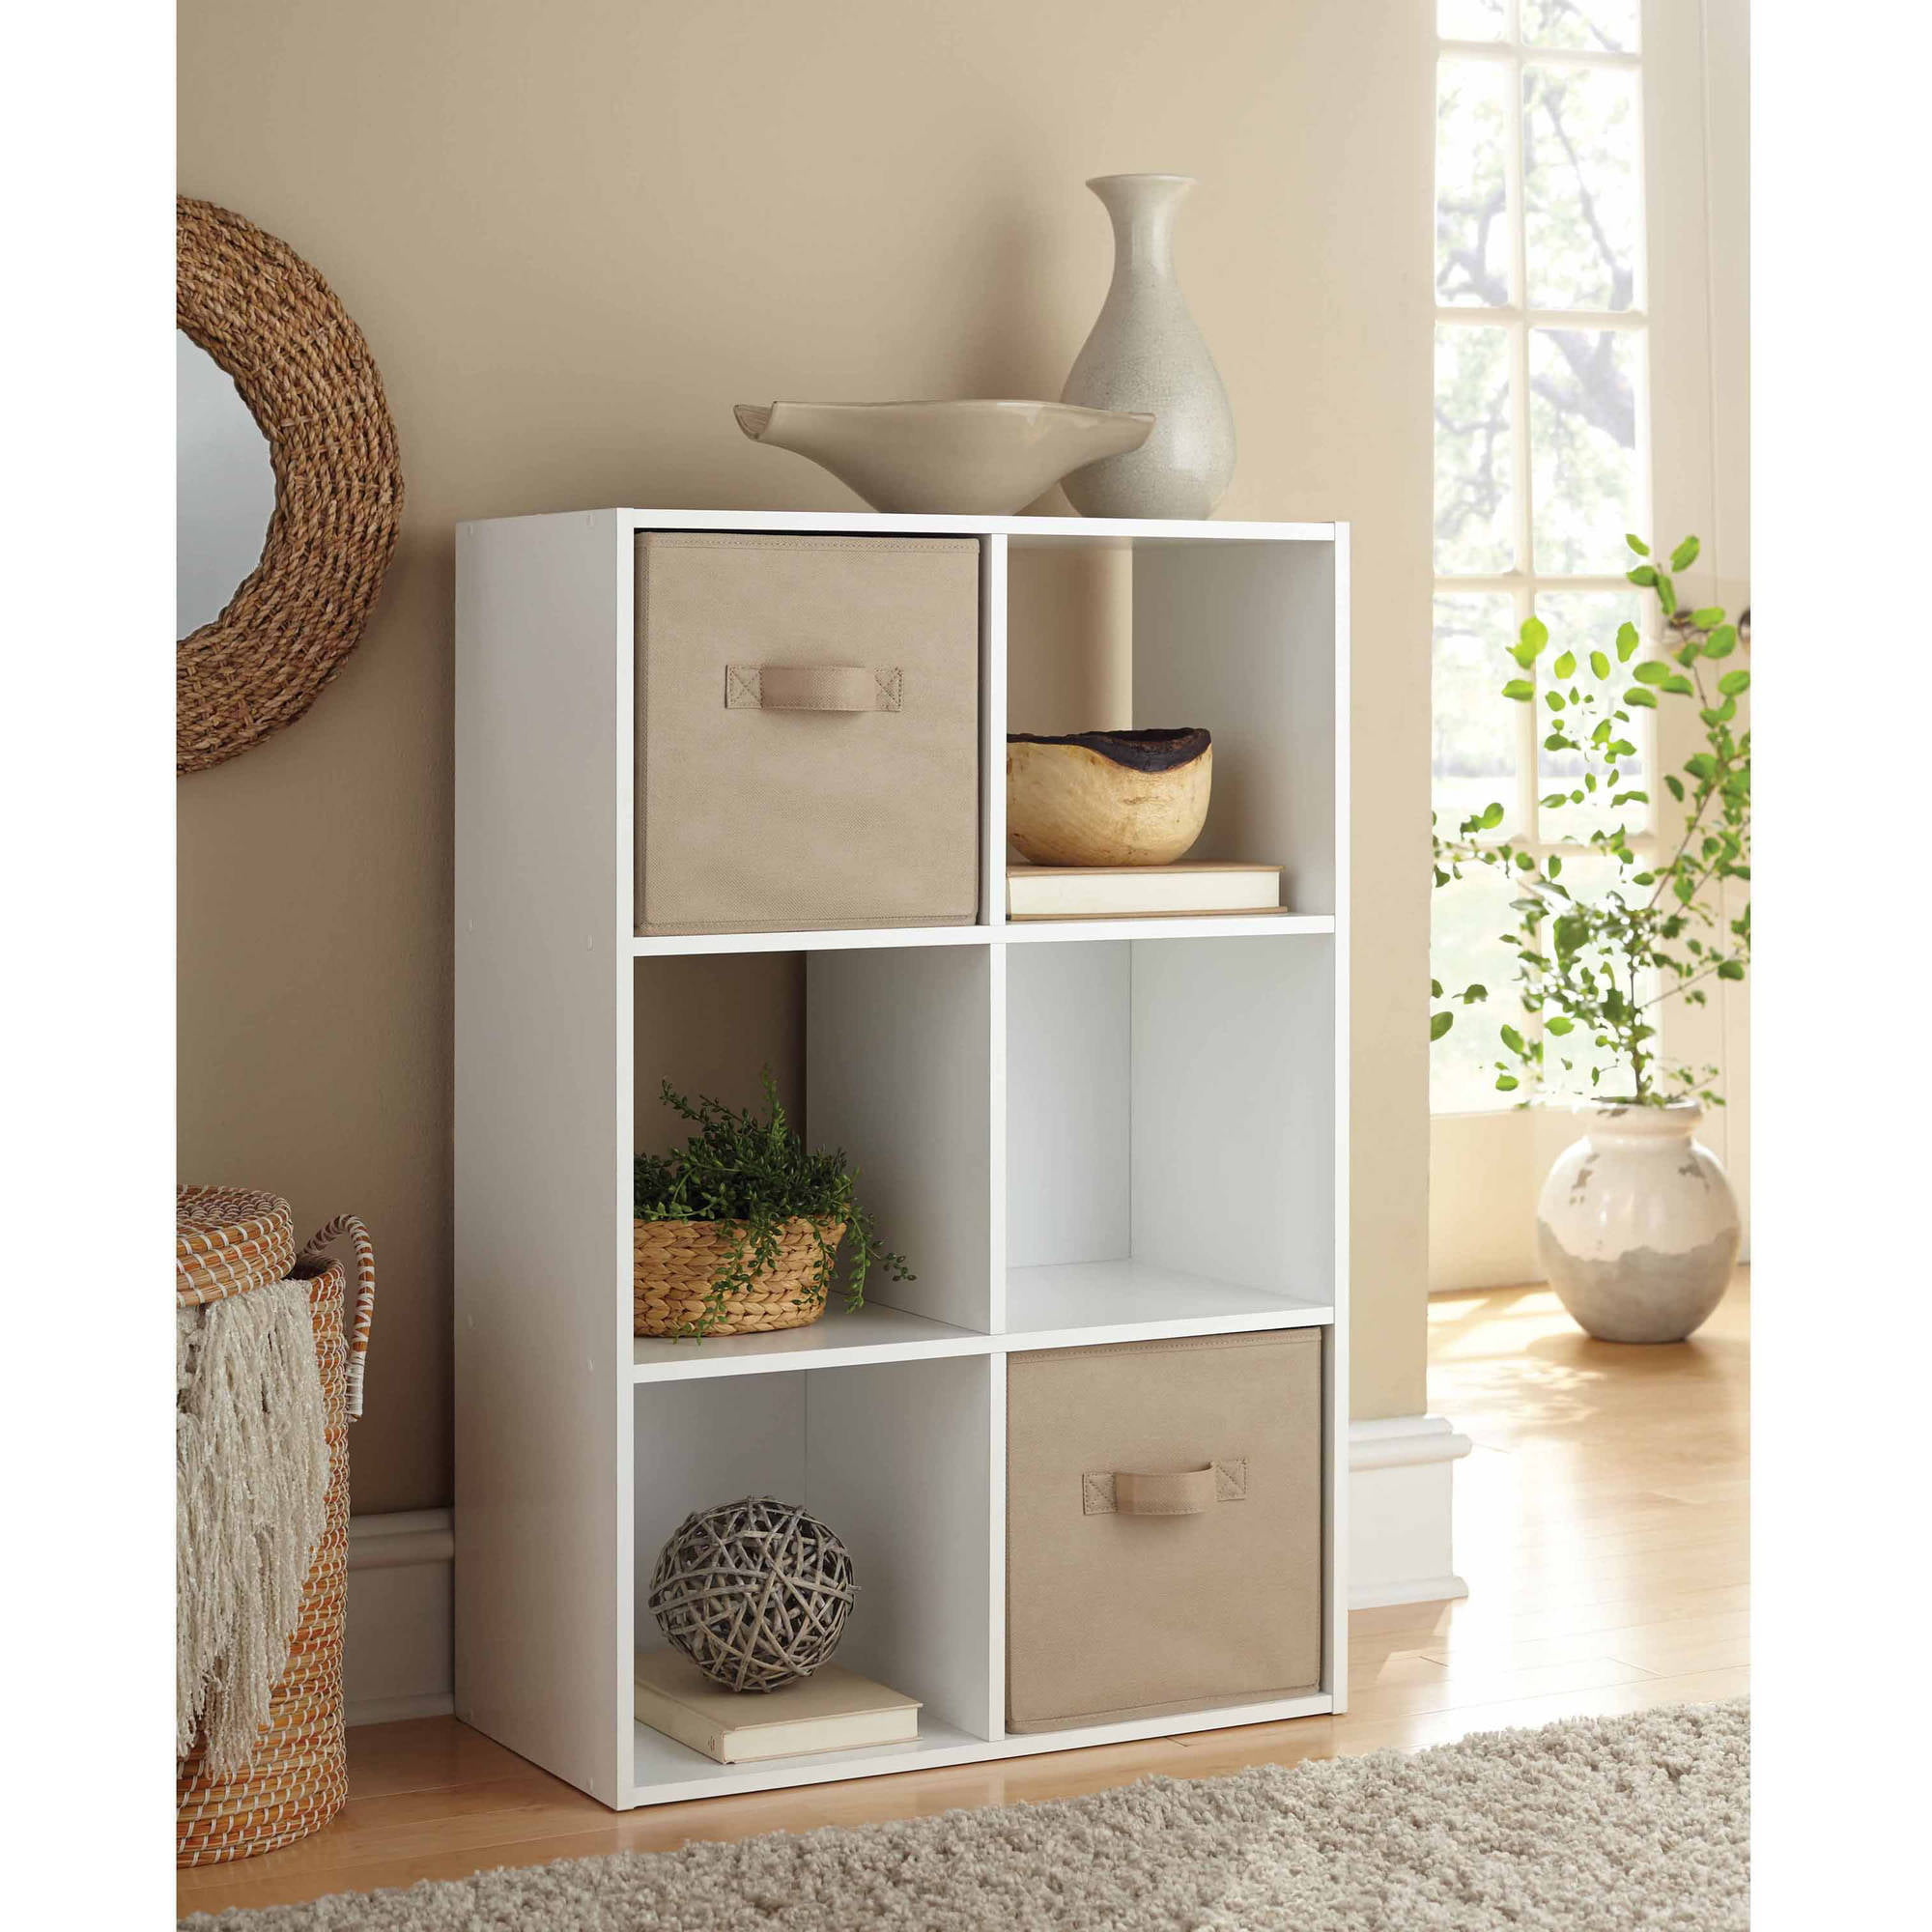 Beau Mainstays 6 Cube Storage Organizer, Multiple Colors   Walmart.com